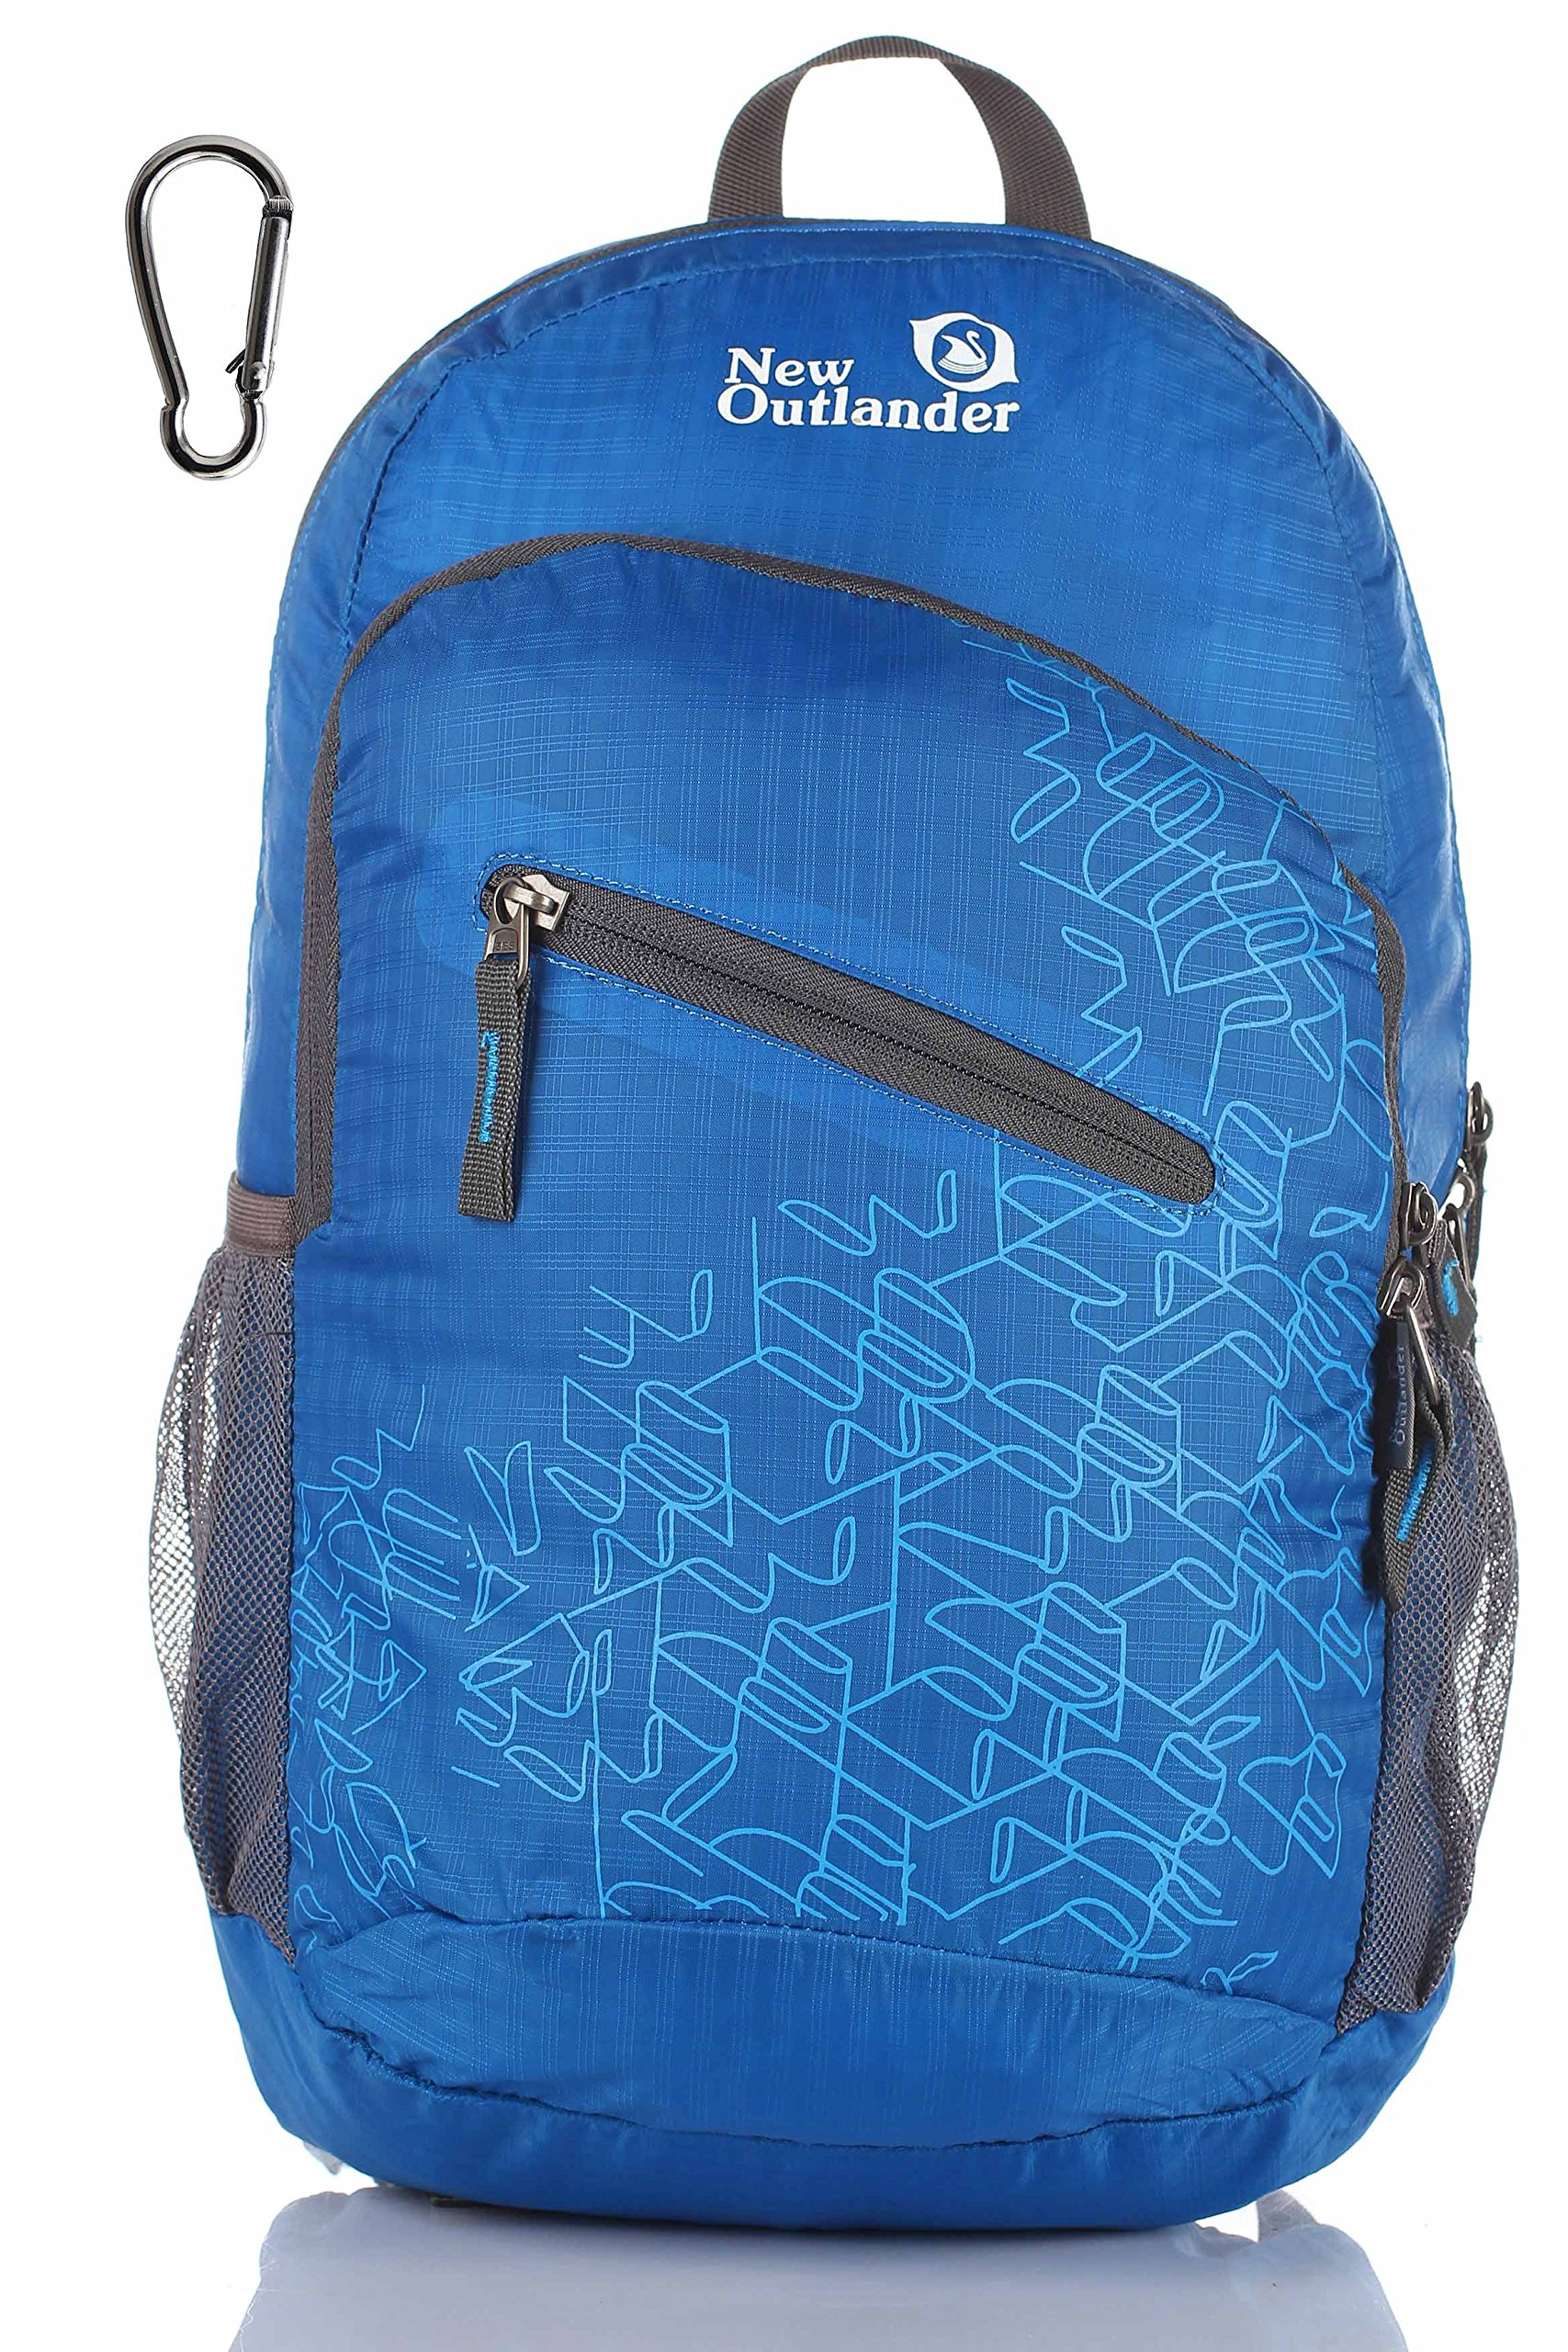 Outlander Packable Handy Lightweight Travel Hiking Backpack Daypack-Dark Blue by Outlander